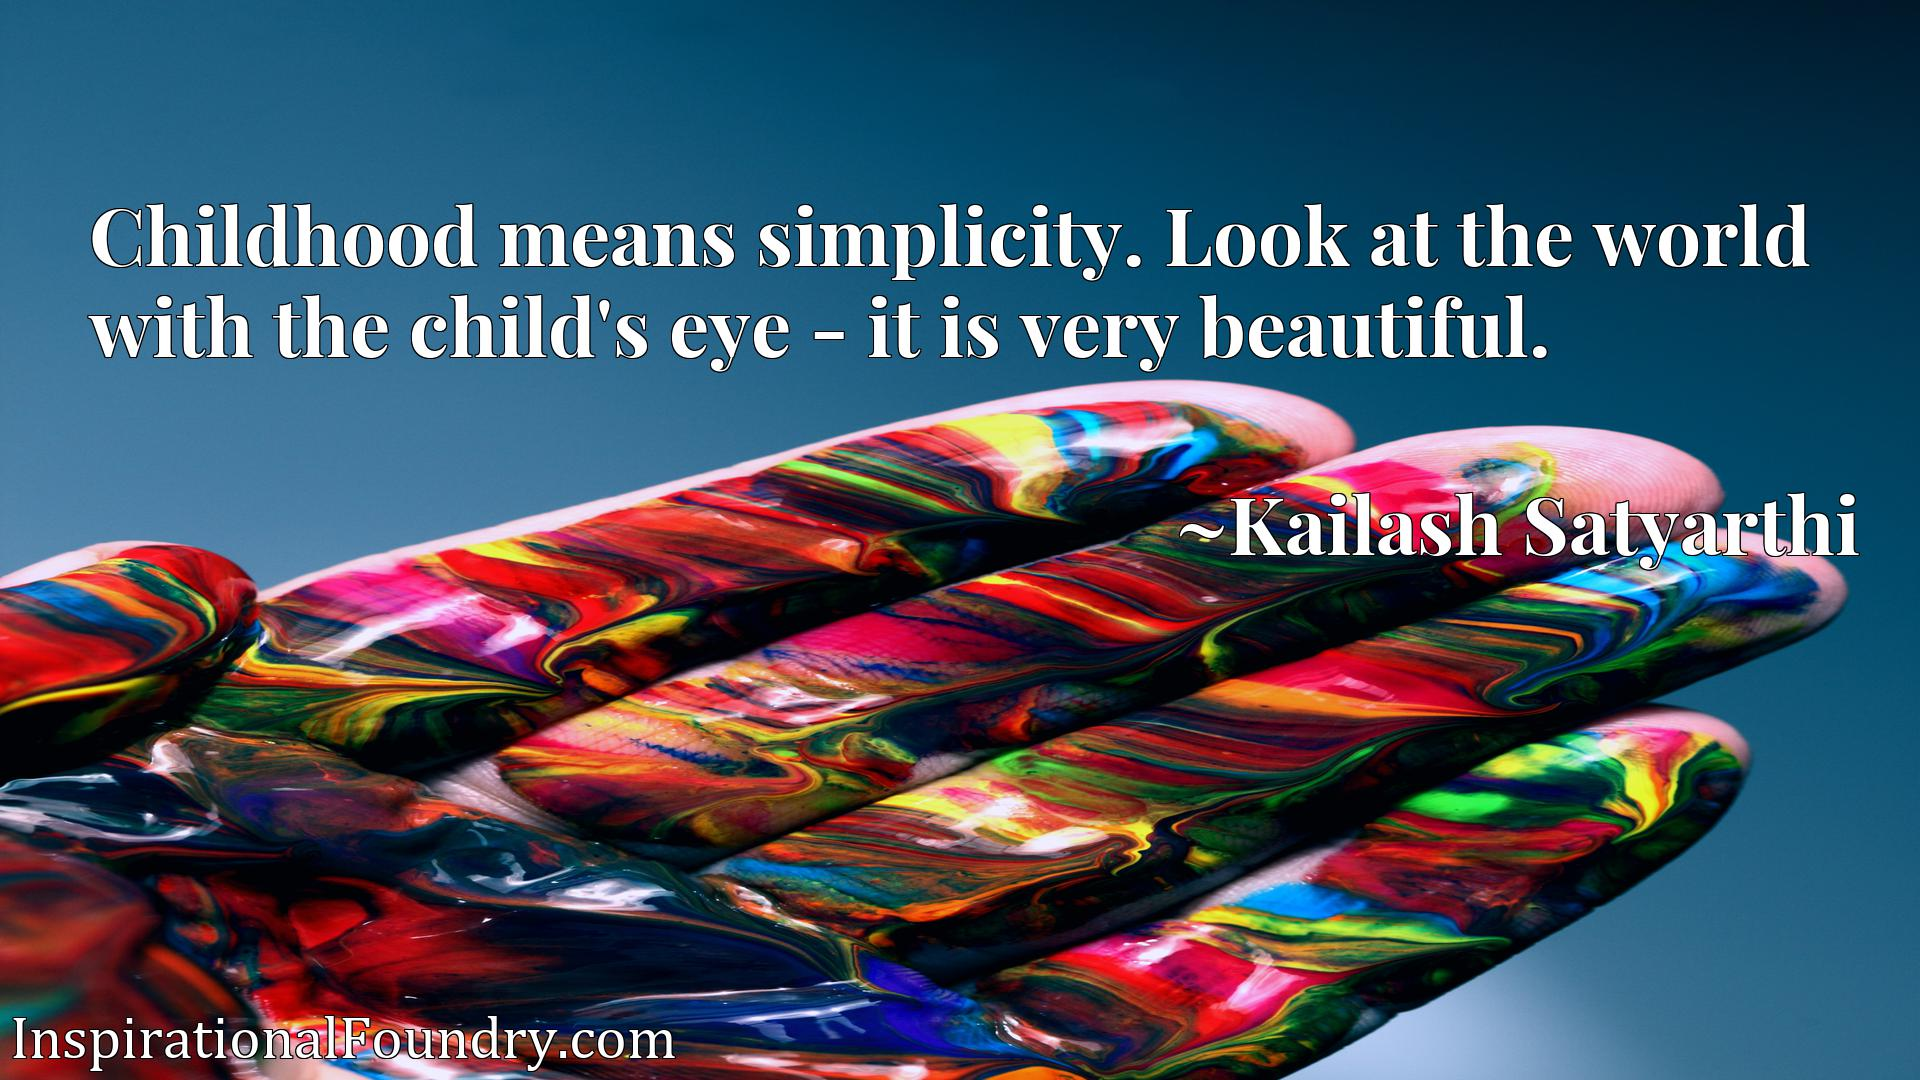 Quote Picture :Childhood means simplicity. Look at the world with the child's eye - it is very beautiful.